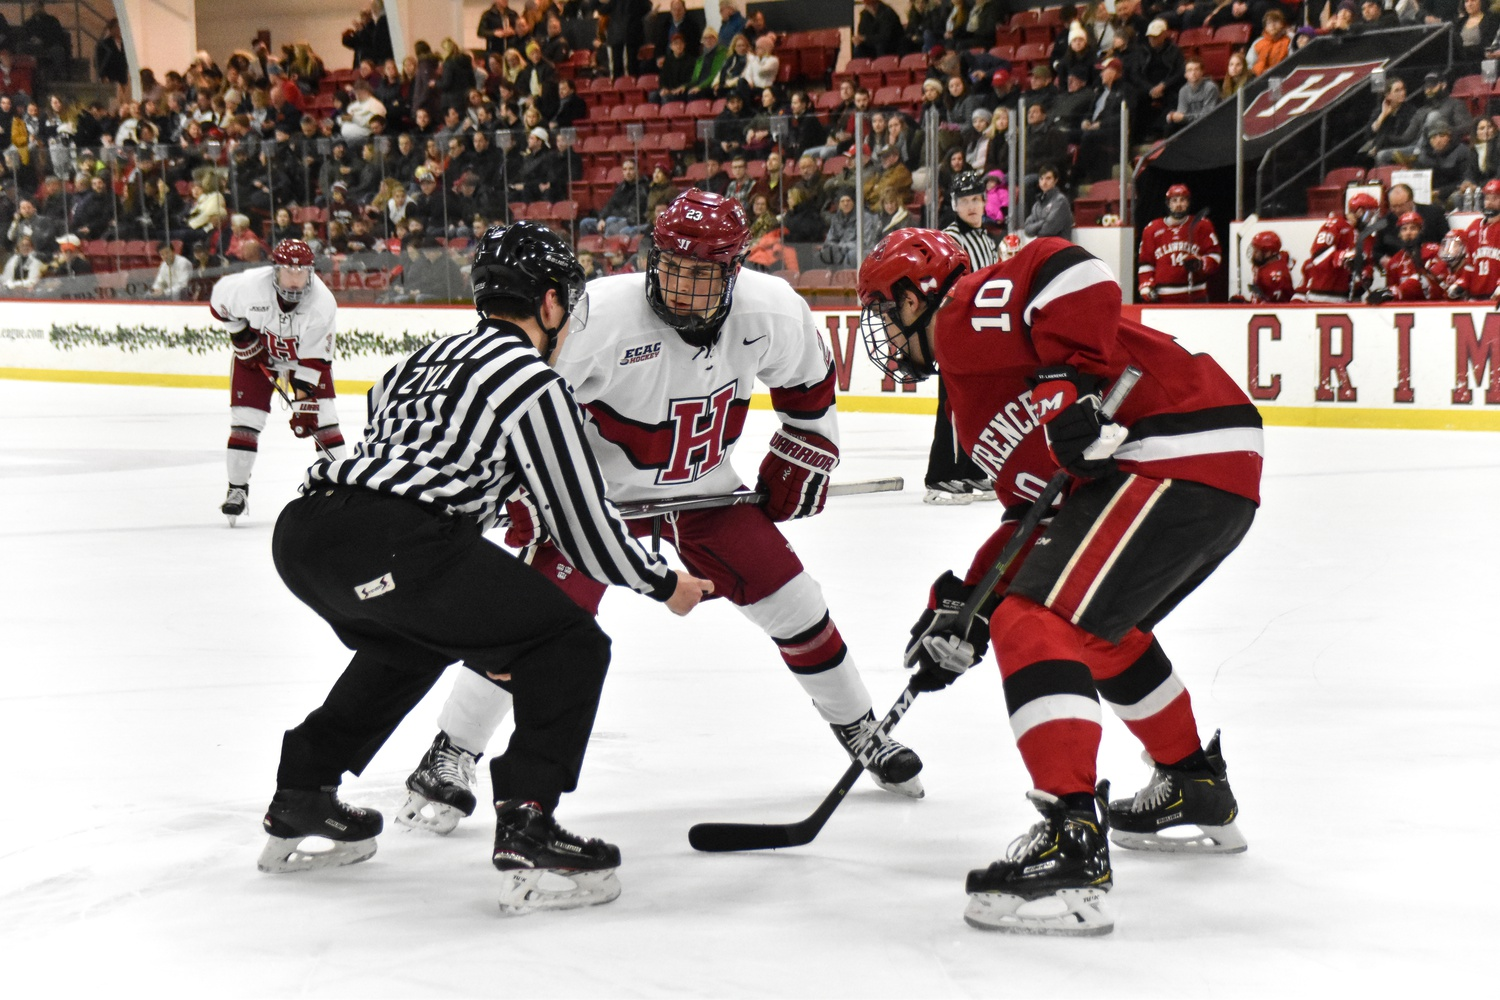 The last time the Crimson faced off against St. Lawrence, the Saints were staring down a 6-0 hole 30 minutes into the game. Harvard net-minder Michael Lackey, who returned to the bench at the halfway mark, posted a perfect save percentage for the night.